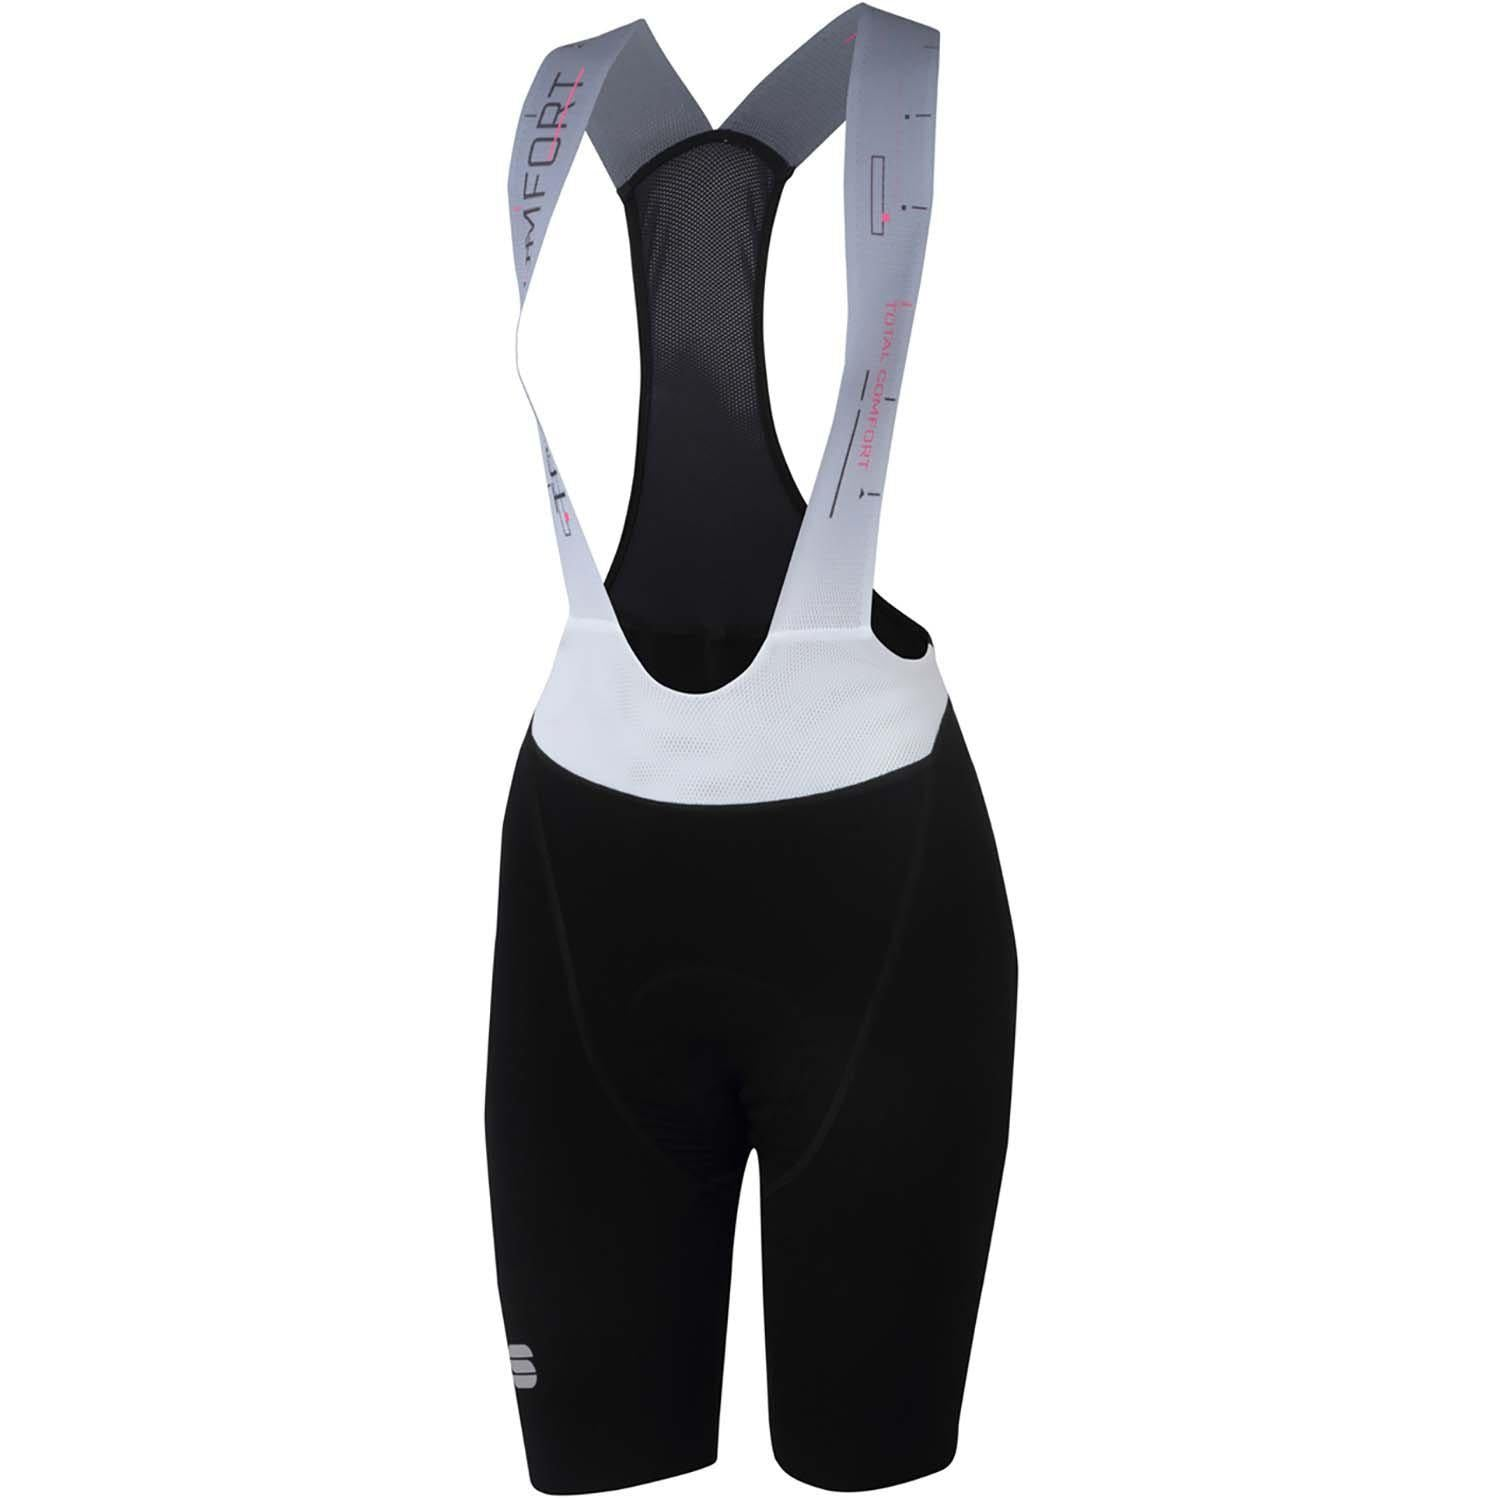 Sportful-Sportful Total Comfort Women's Bib Shorts-Black-XS-SF200380021-saddleback-elite-performance-cycling